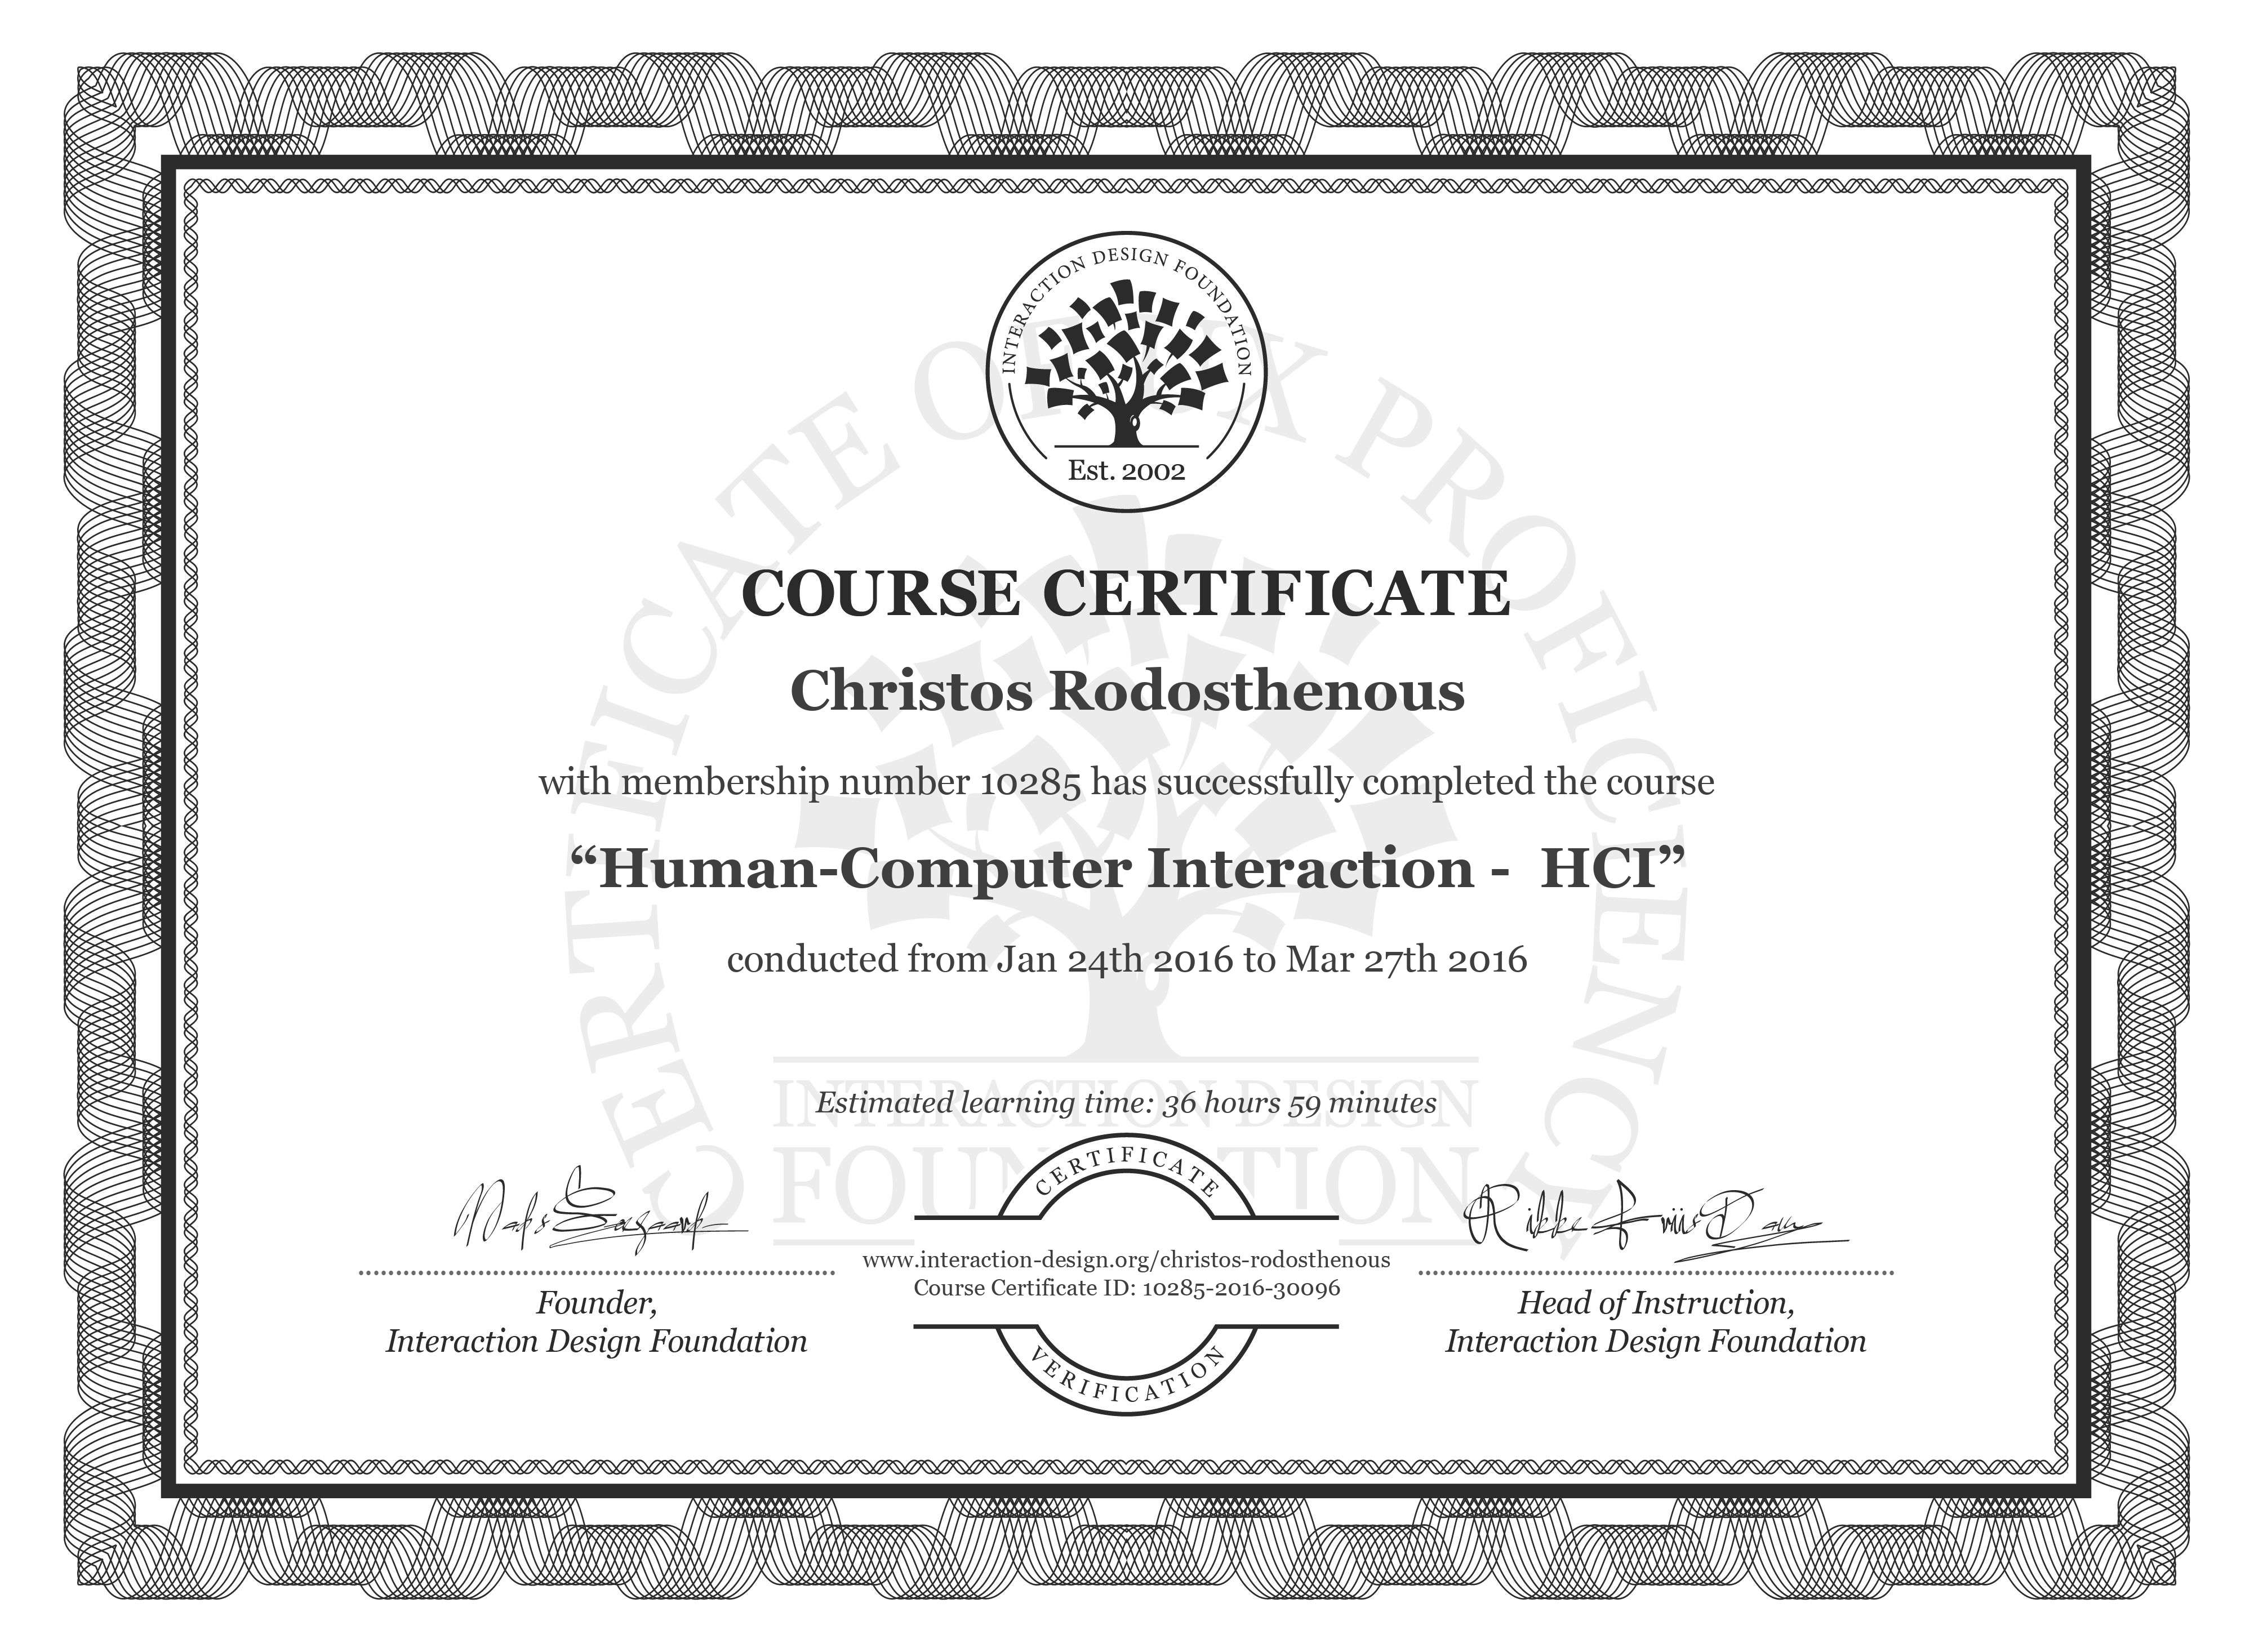 Christos Rodosthenous's Course Certificate: Human-Computer Interaction -  HCI